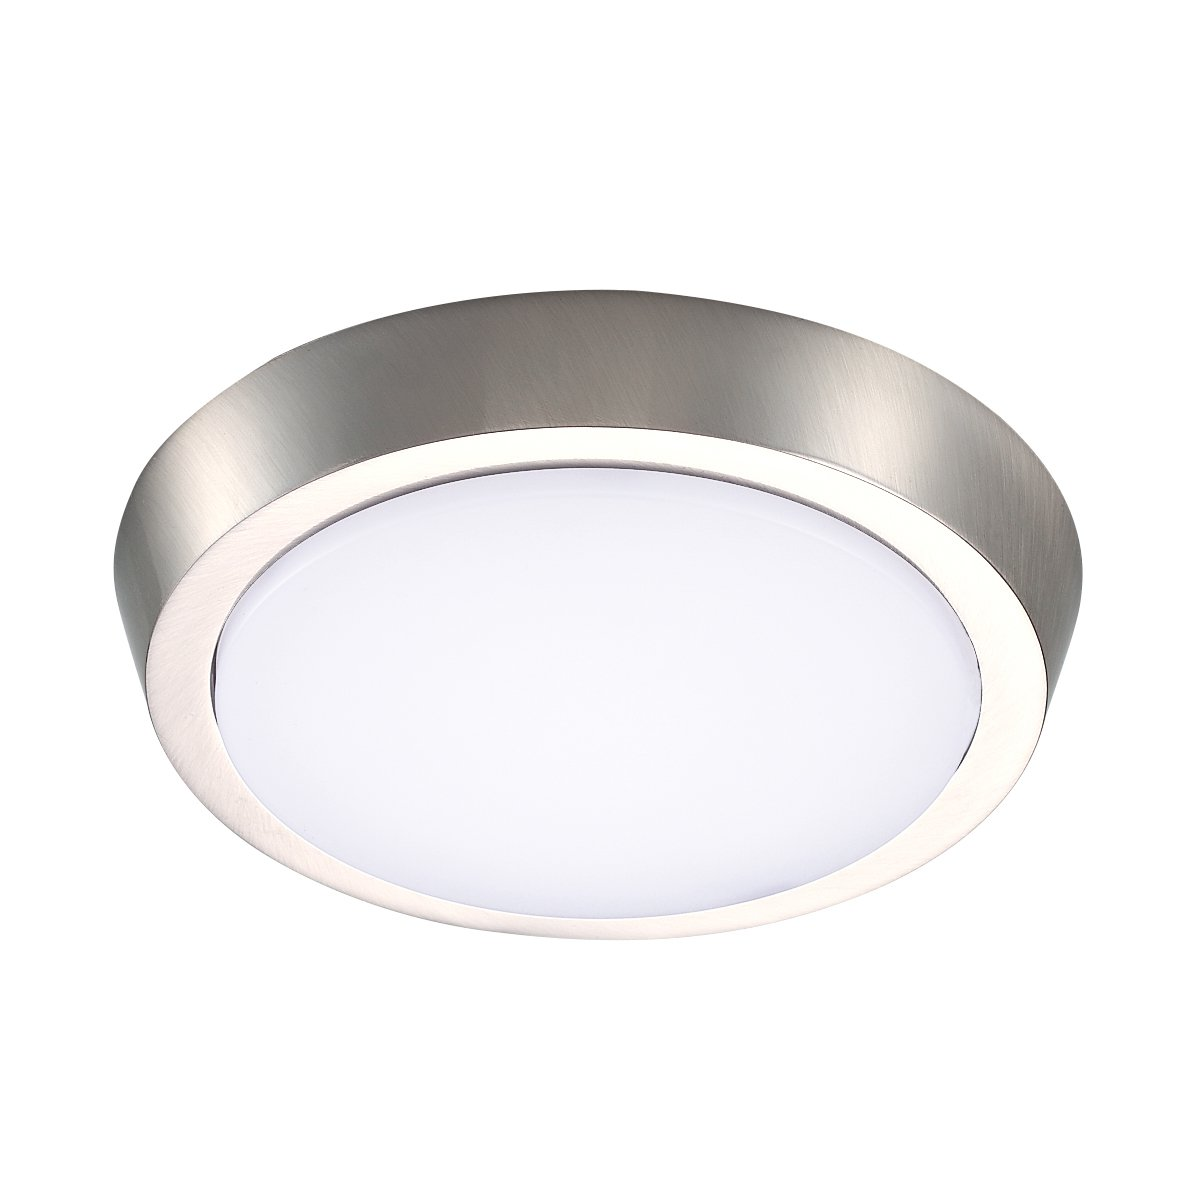 GetInLight 7 Inch Flush Mount LED Ceiling Light with ETL Listed, Bright White 4000K, Brushed Nickel Finish, IN-0302-2-SN-40